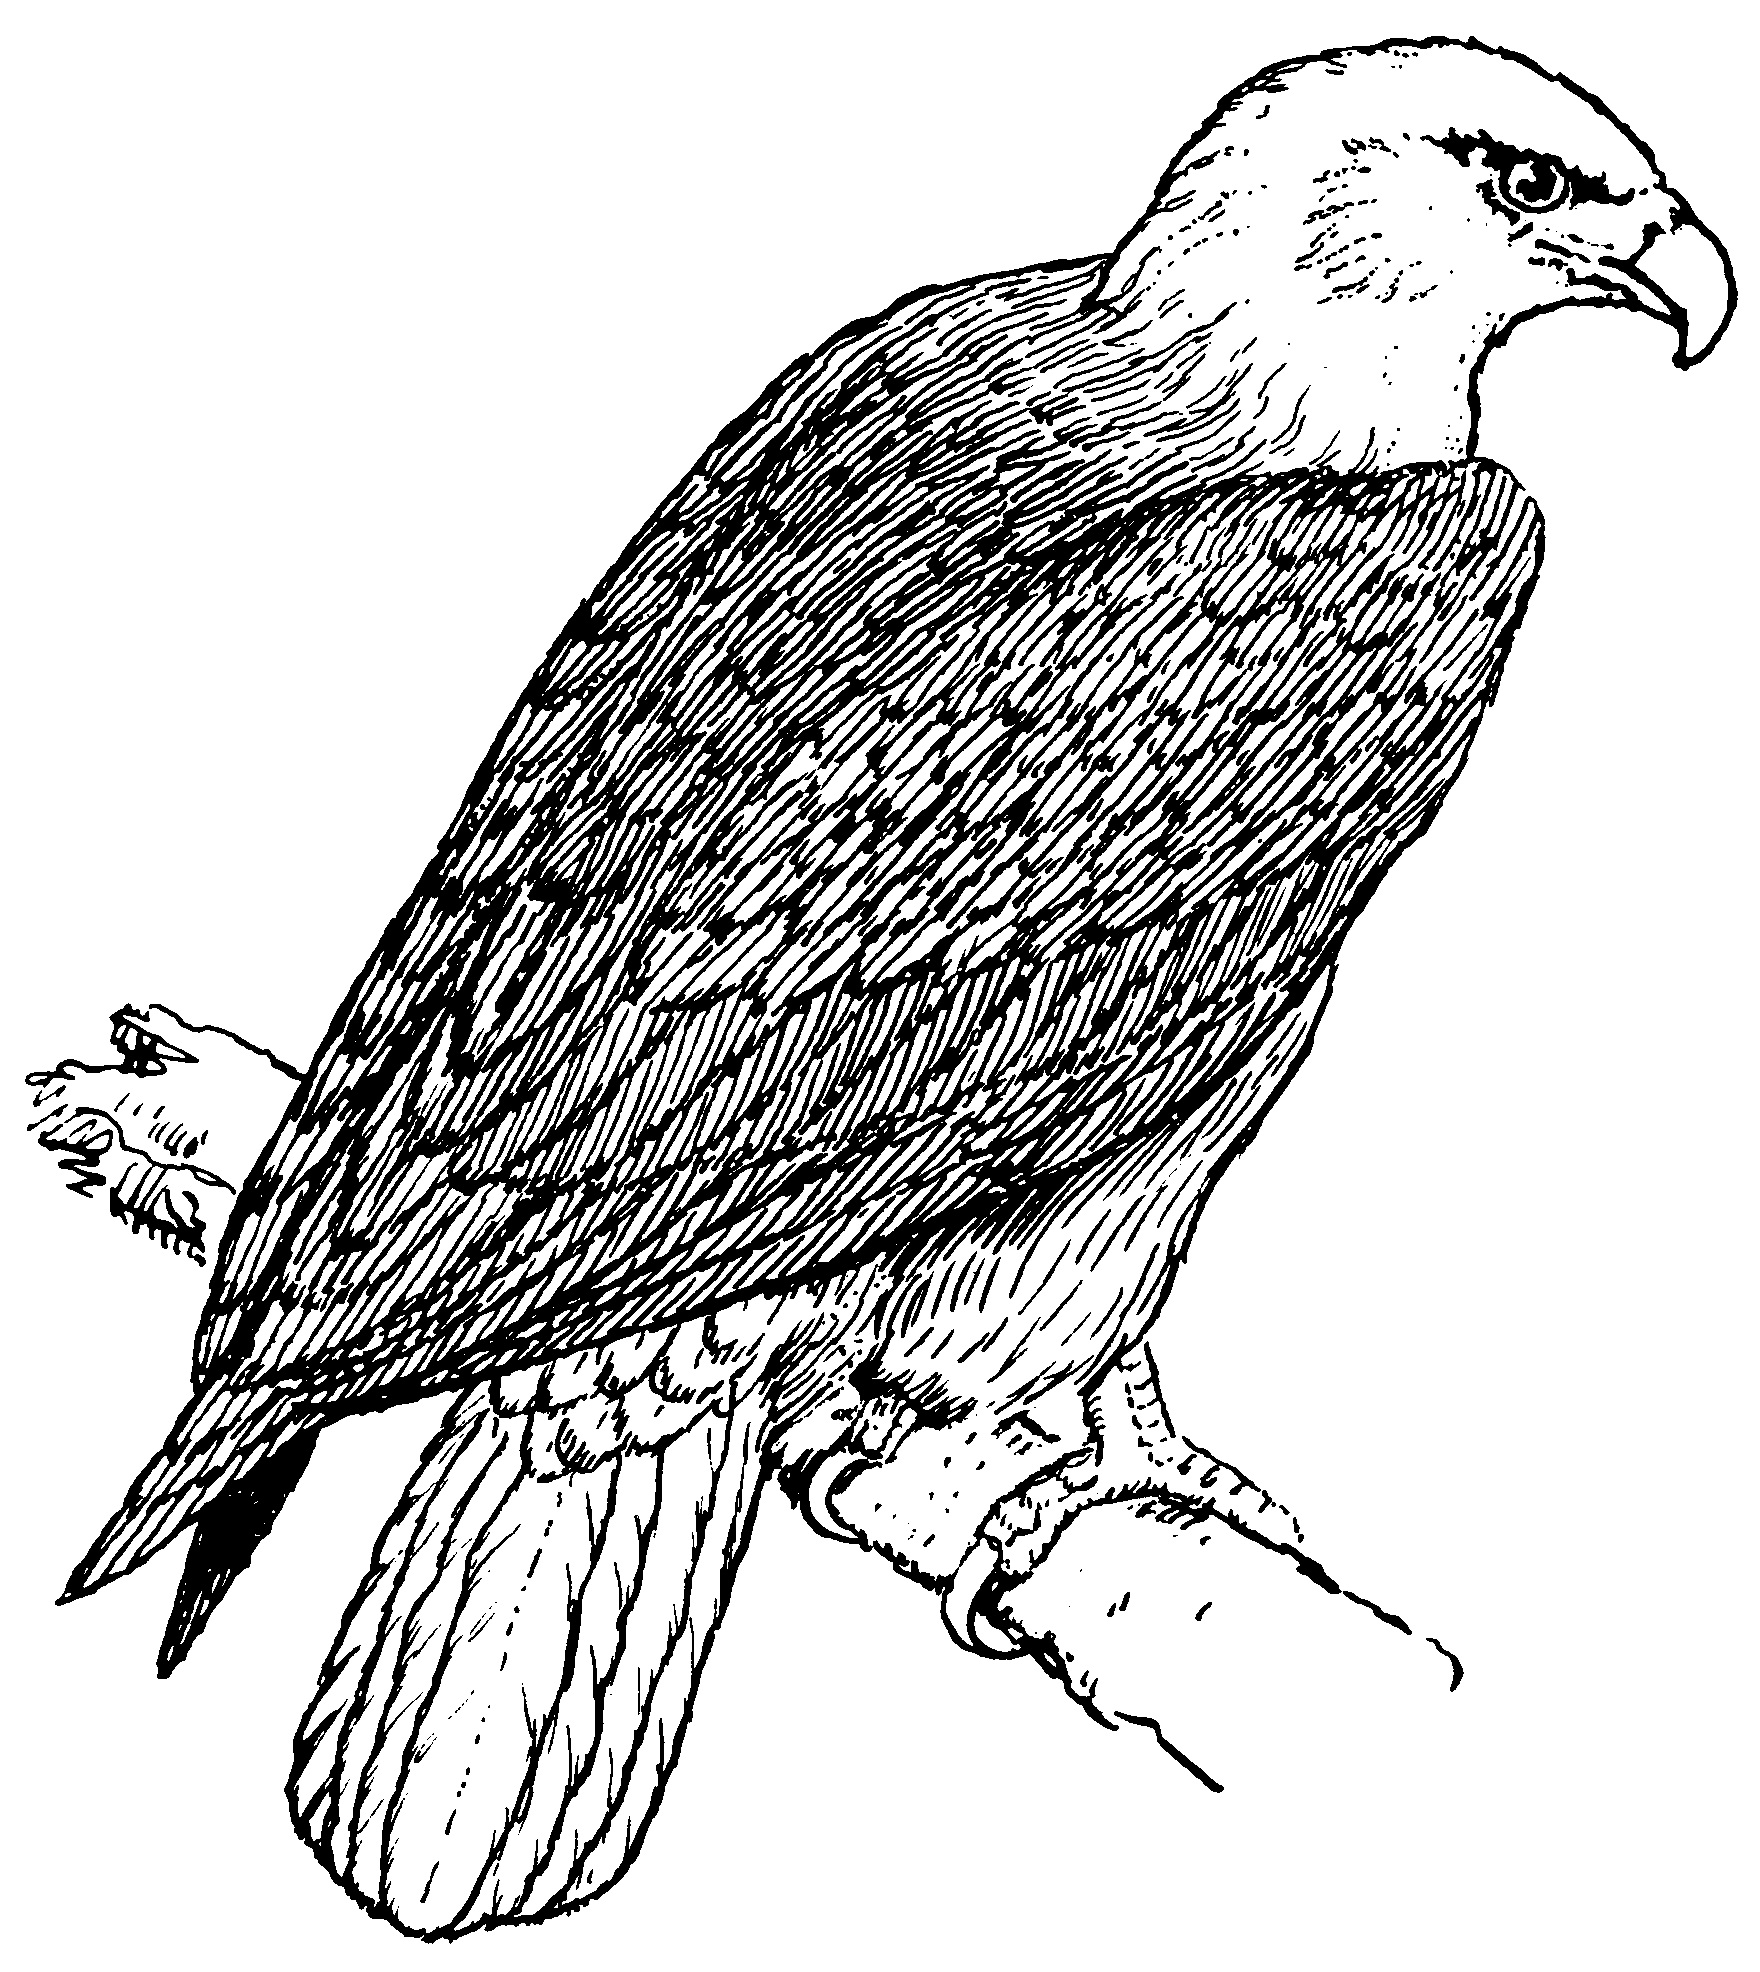 coloring pages of bald eagles american bald eagle coloring page free printable coloring pages of bald eagles